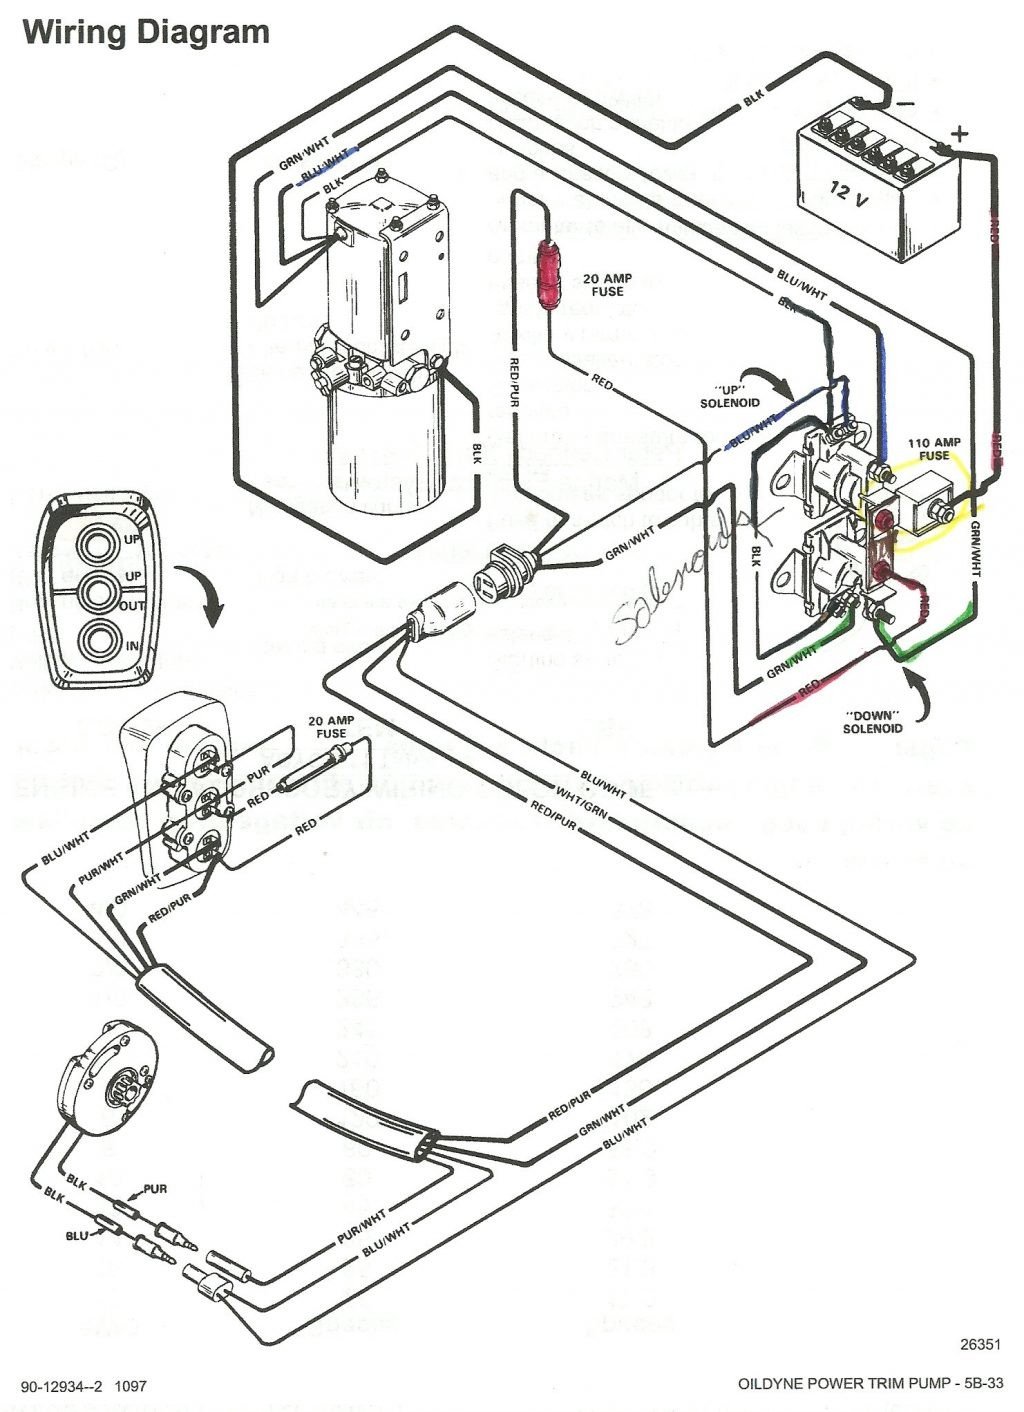 mercruiser trim pump wiring trusted wiring diagrams u2022 rh sivamuni com mercruiser 140 engine wiring diagram 1985 mercruiser 140 wiring diagram